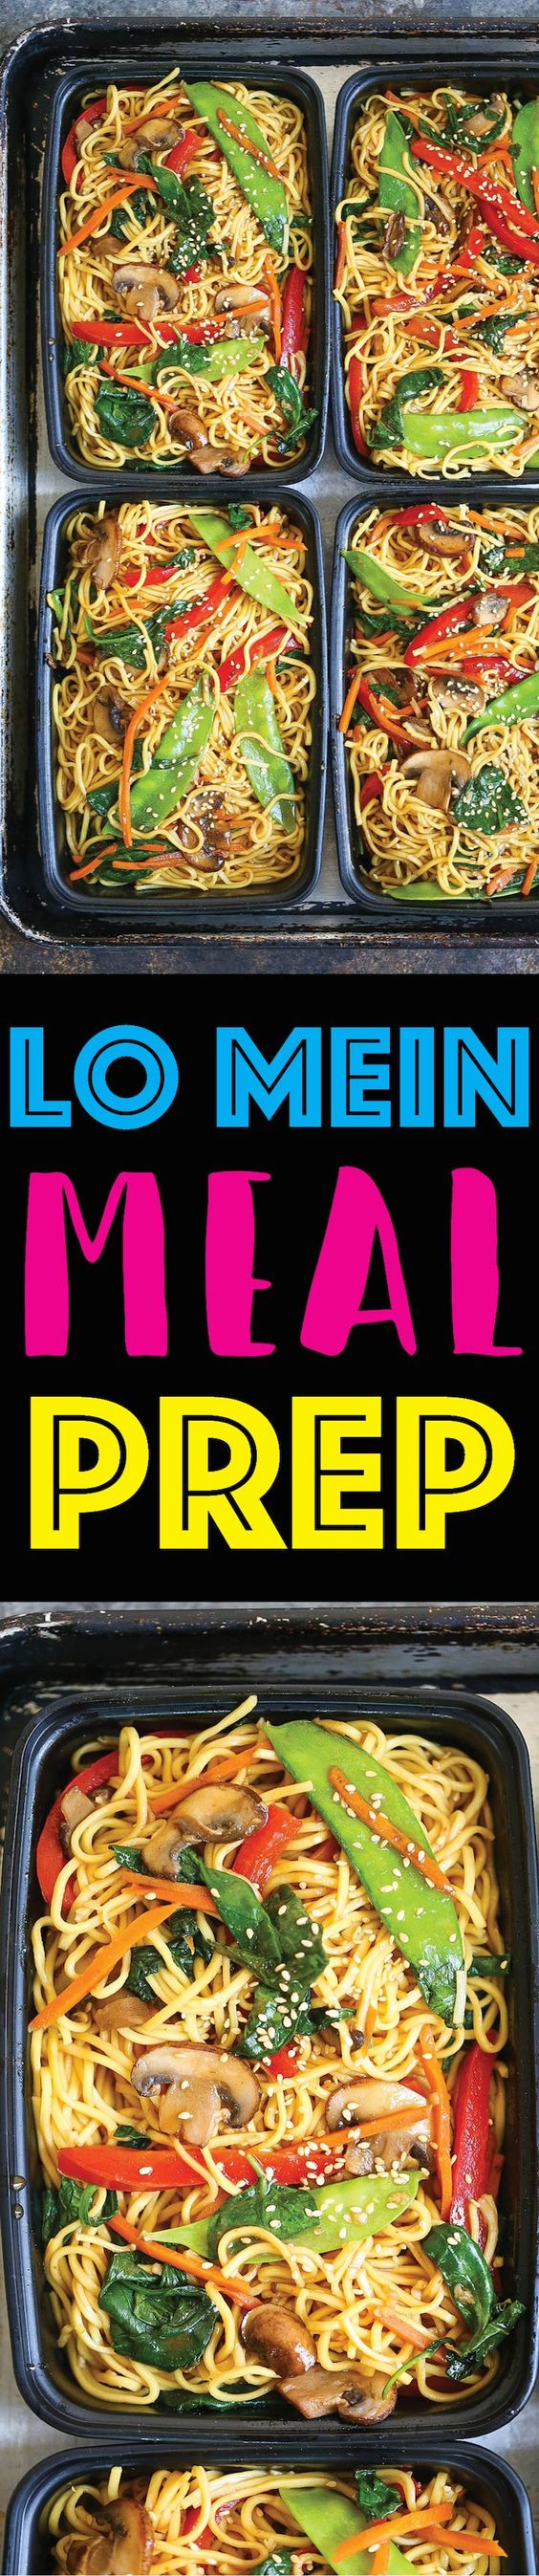 Lo Mein Meal Prep by Damn Delicious